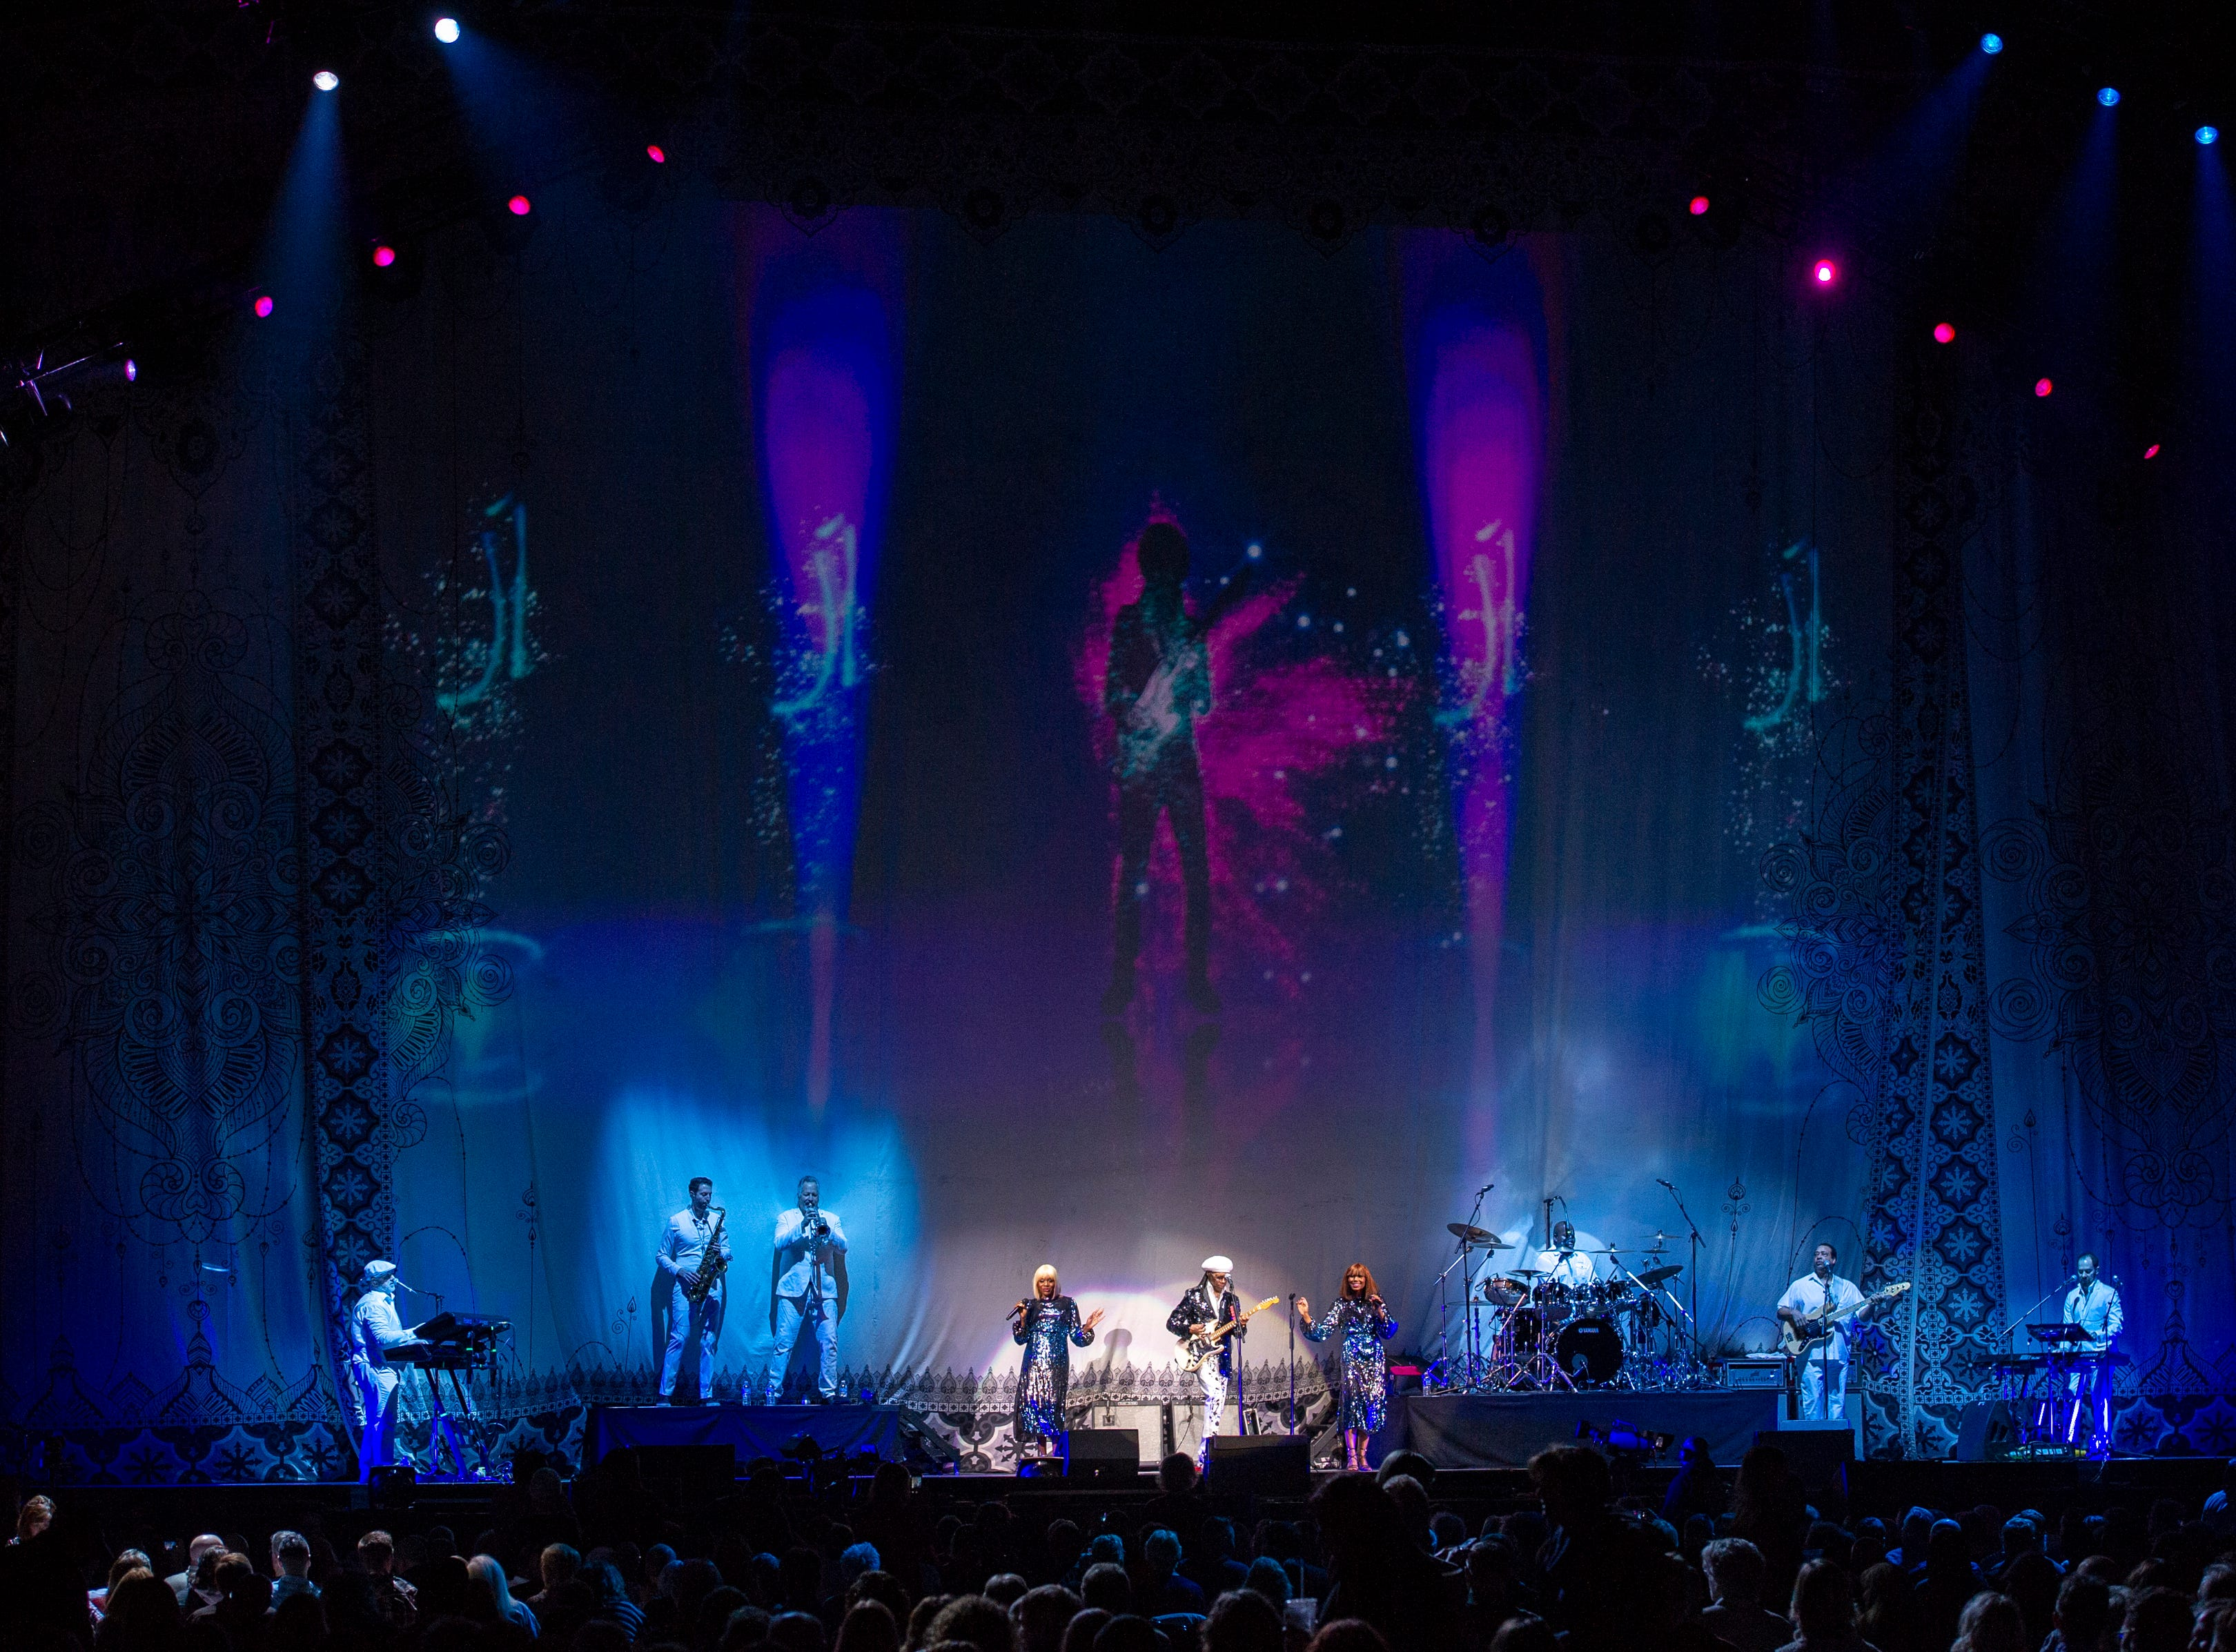 """Nile Rogers & CHIC opened the evening for Cher's """"Here We Go Again"""" tour at Bankers Life Fieldhouse in Indianapolis, Thursday, Feb. 14, 2019."""